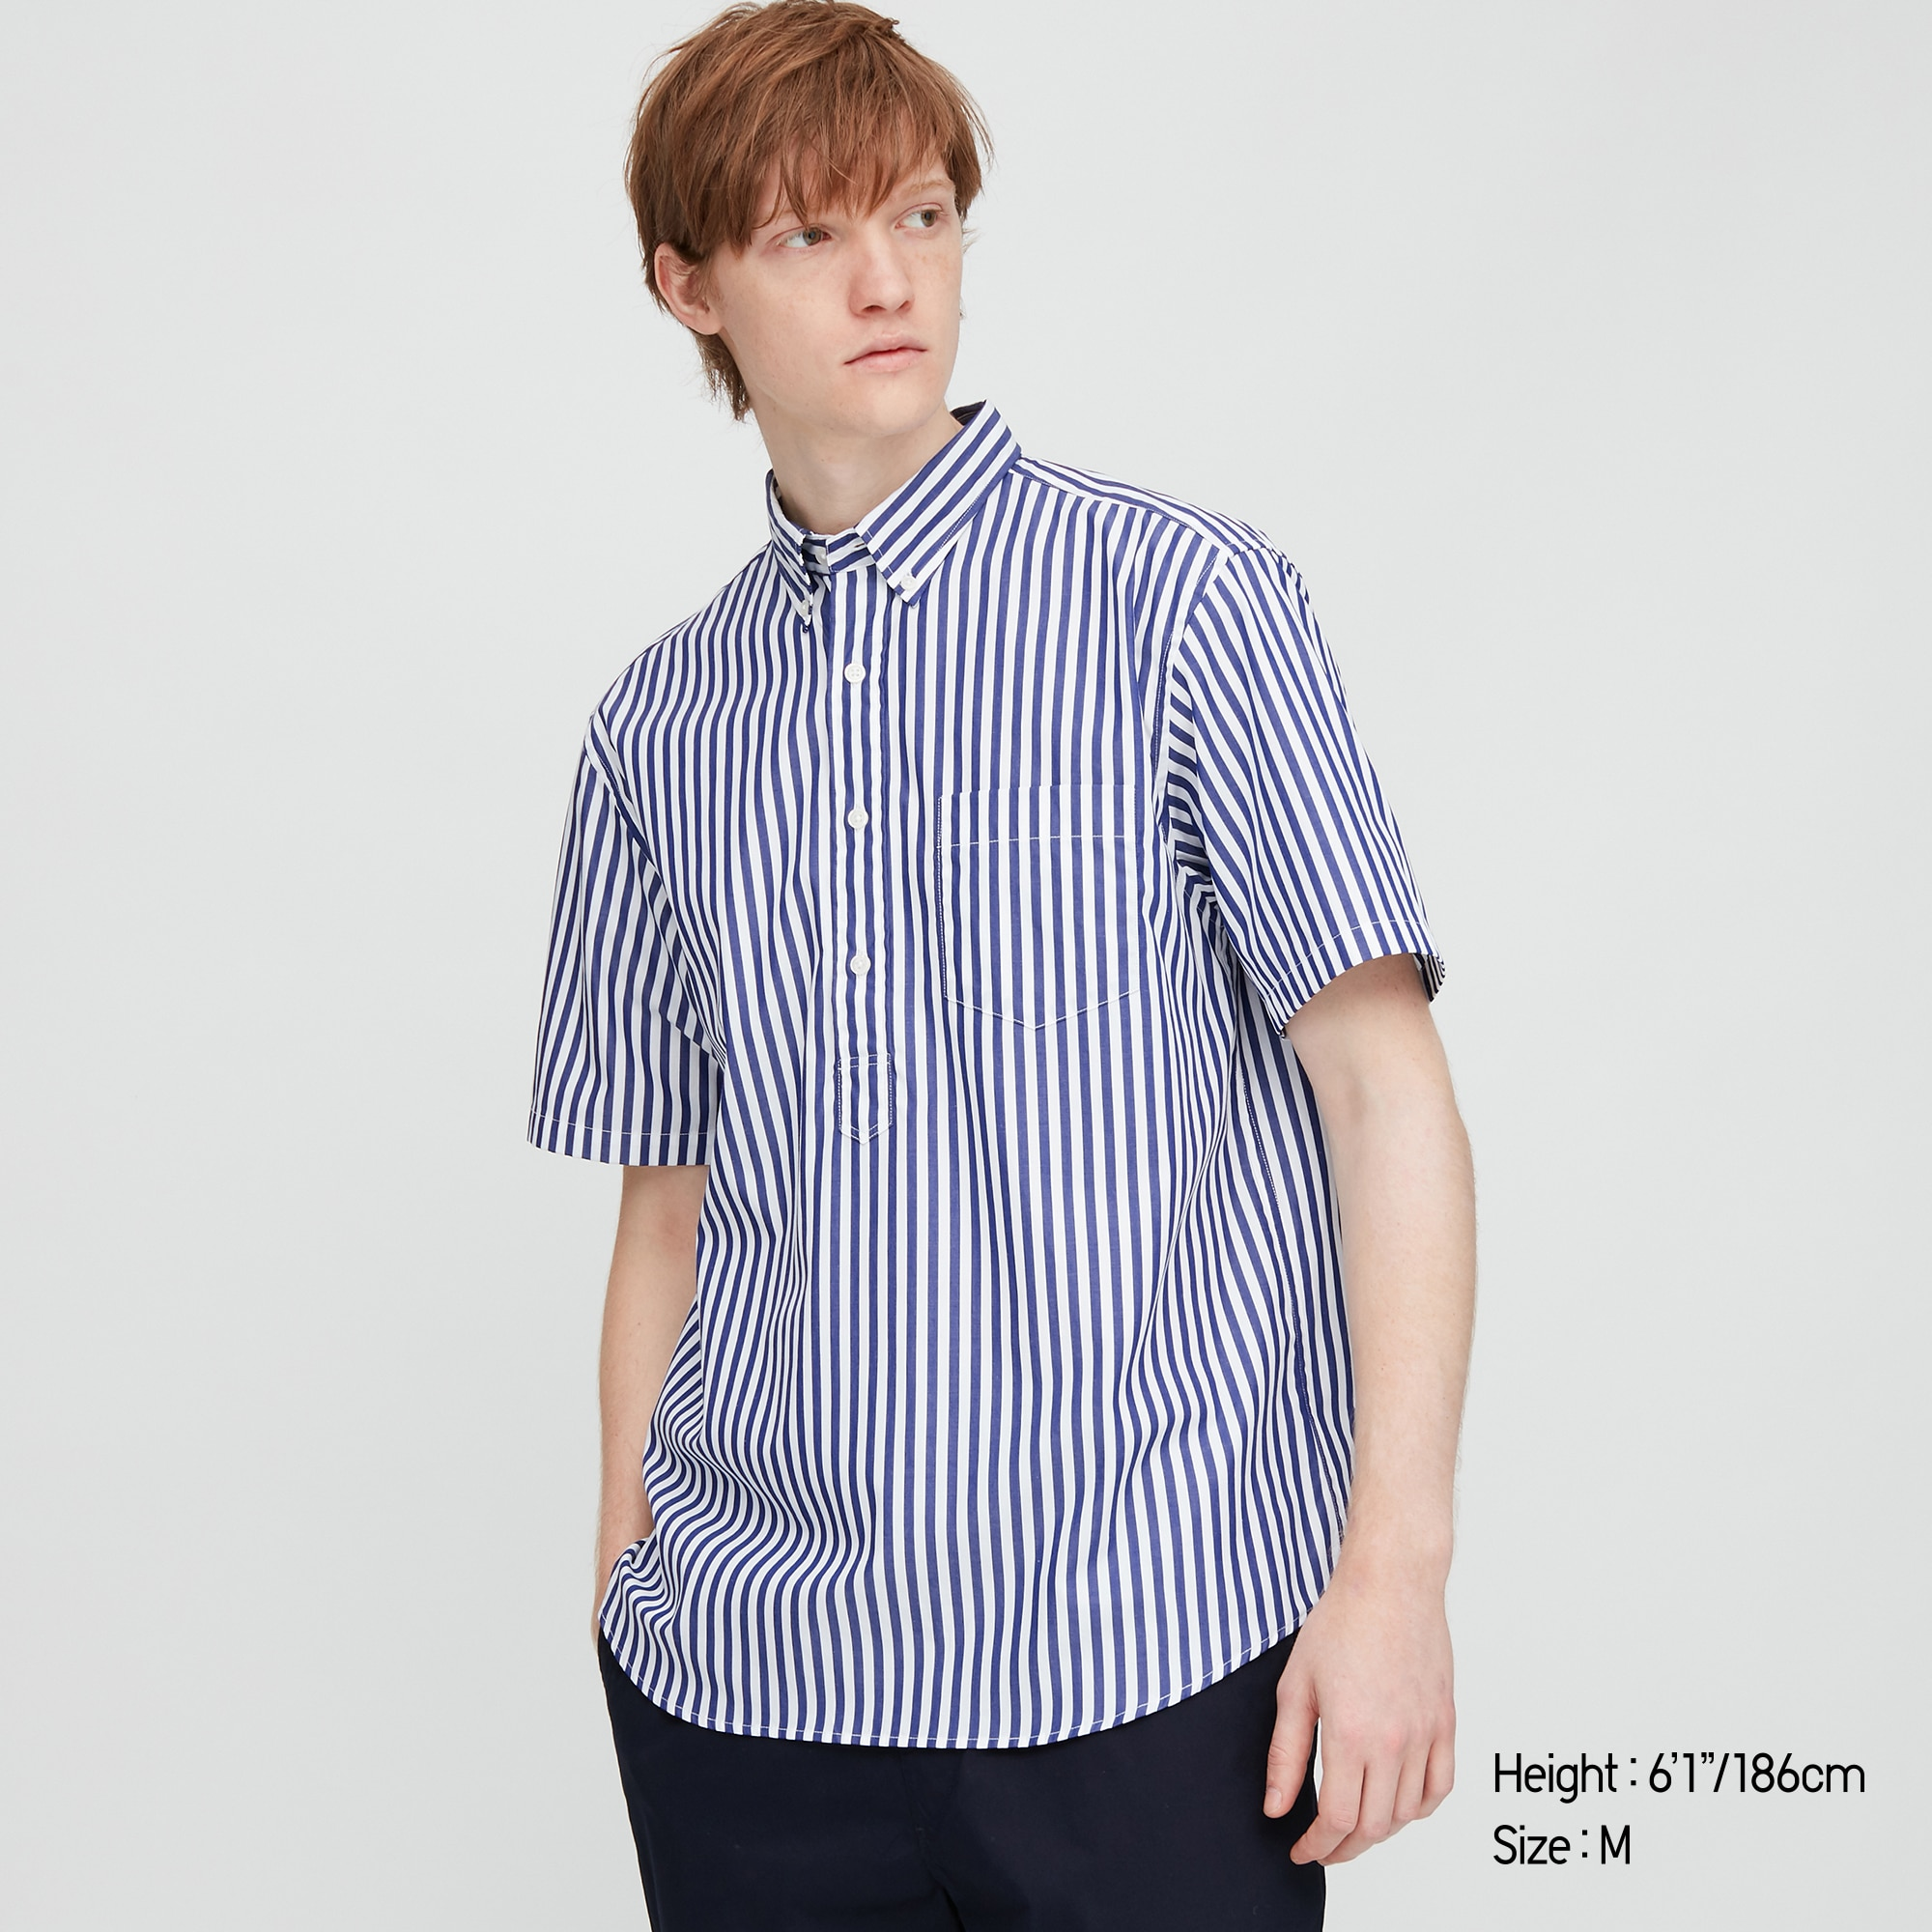 Uniqlo men extra fine cotton broadcloth short-sleeve shirt